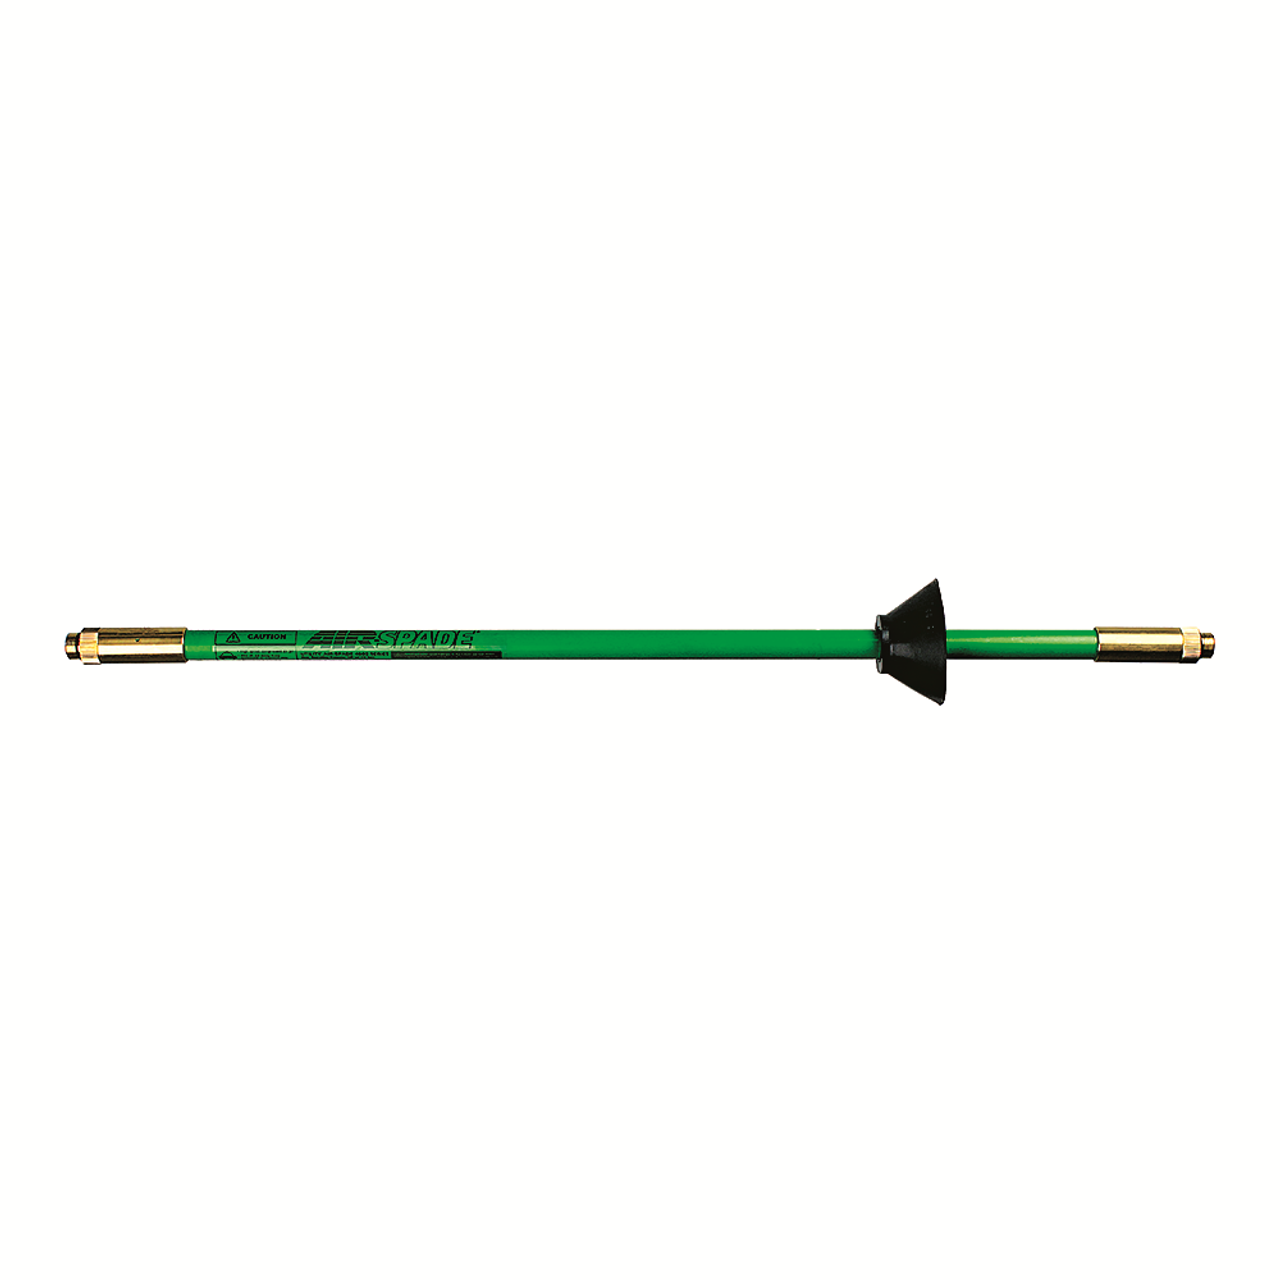 Utility AirSpade 4000 4 Ft Barrel with Dirt Shield